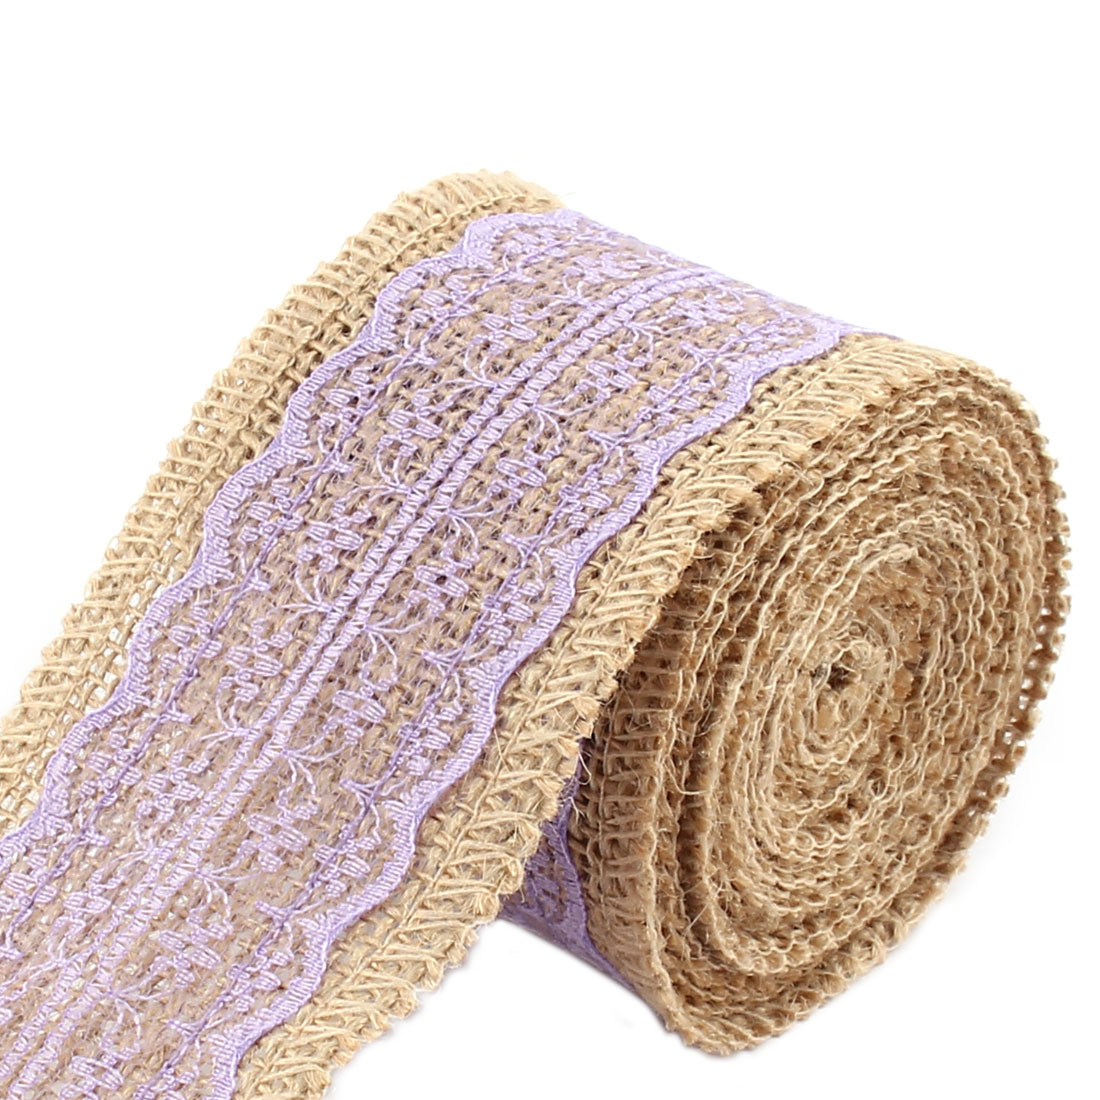 Unique Bargains Christmas Burlap DIY Gift Wrapping Packing Craft Ribbon Roll Light Purple